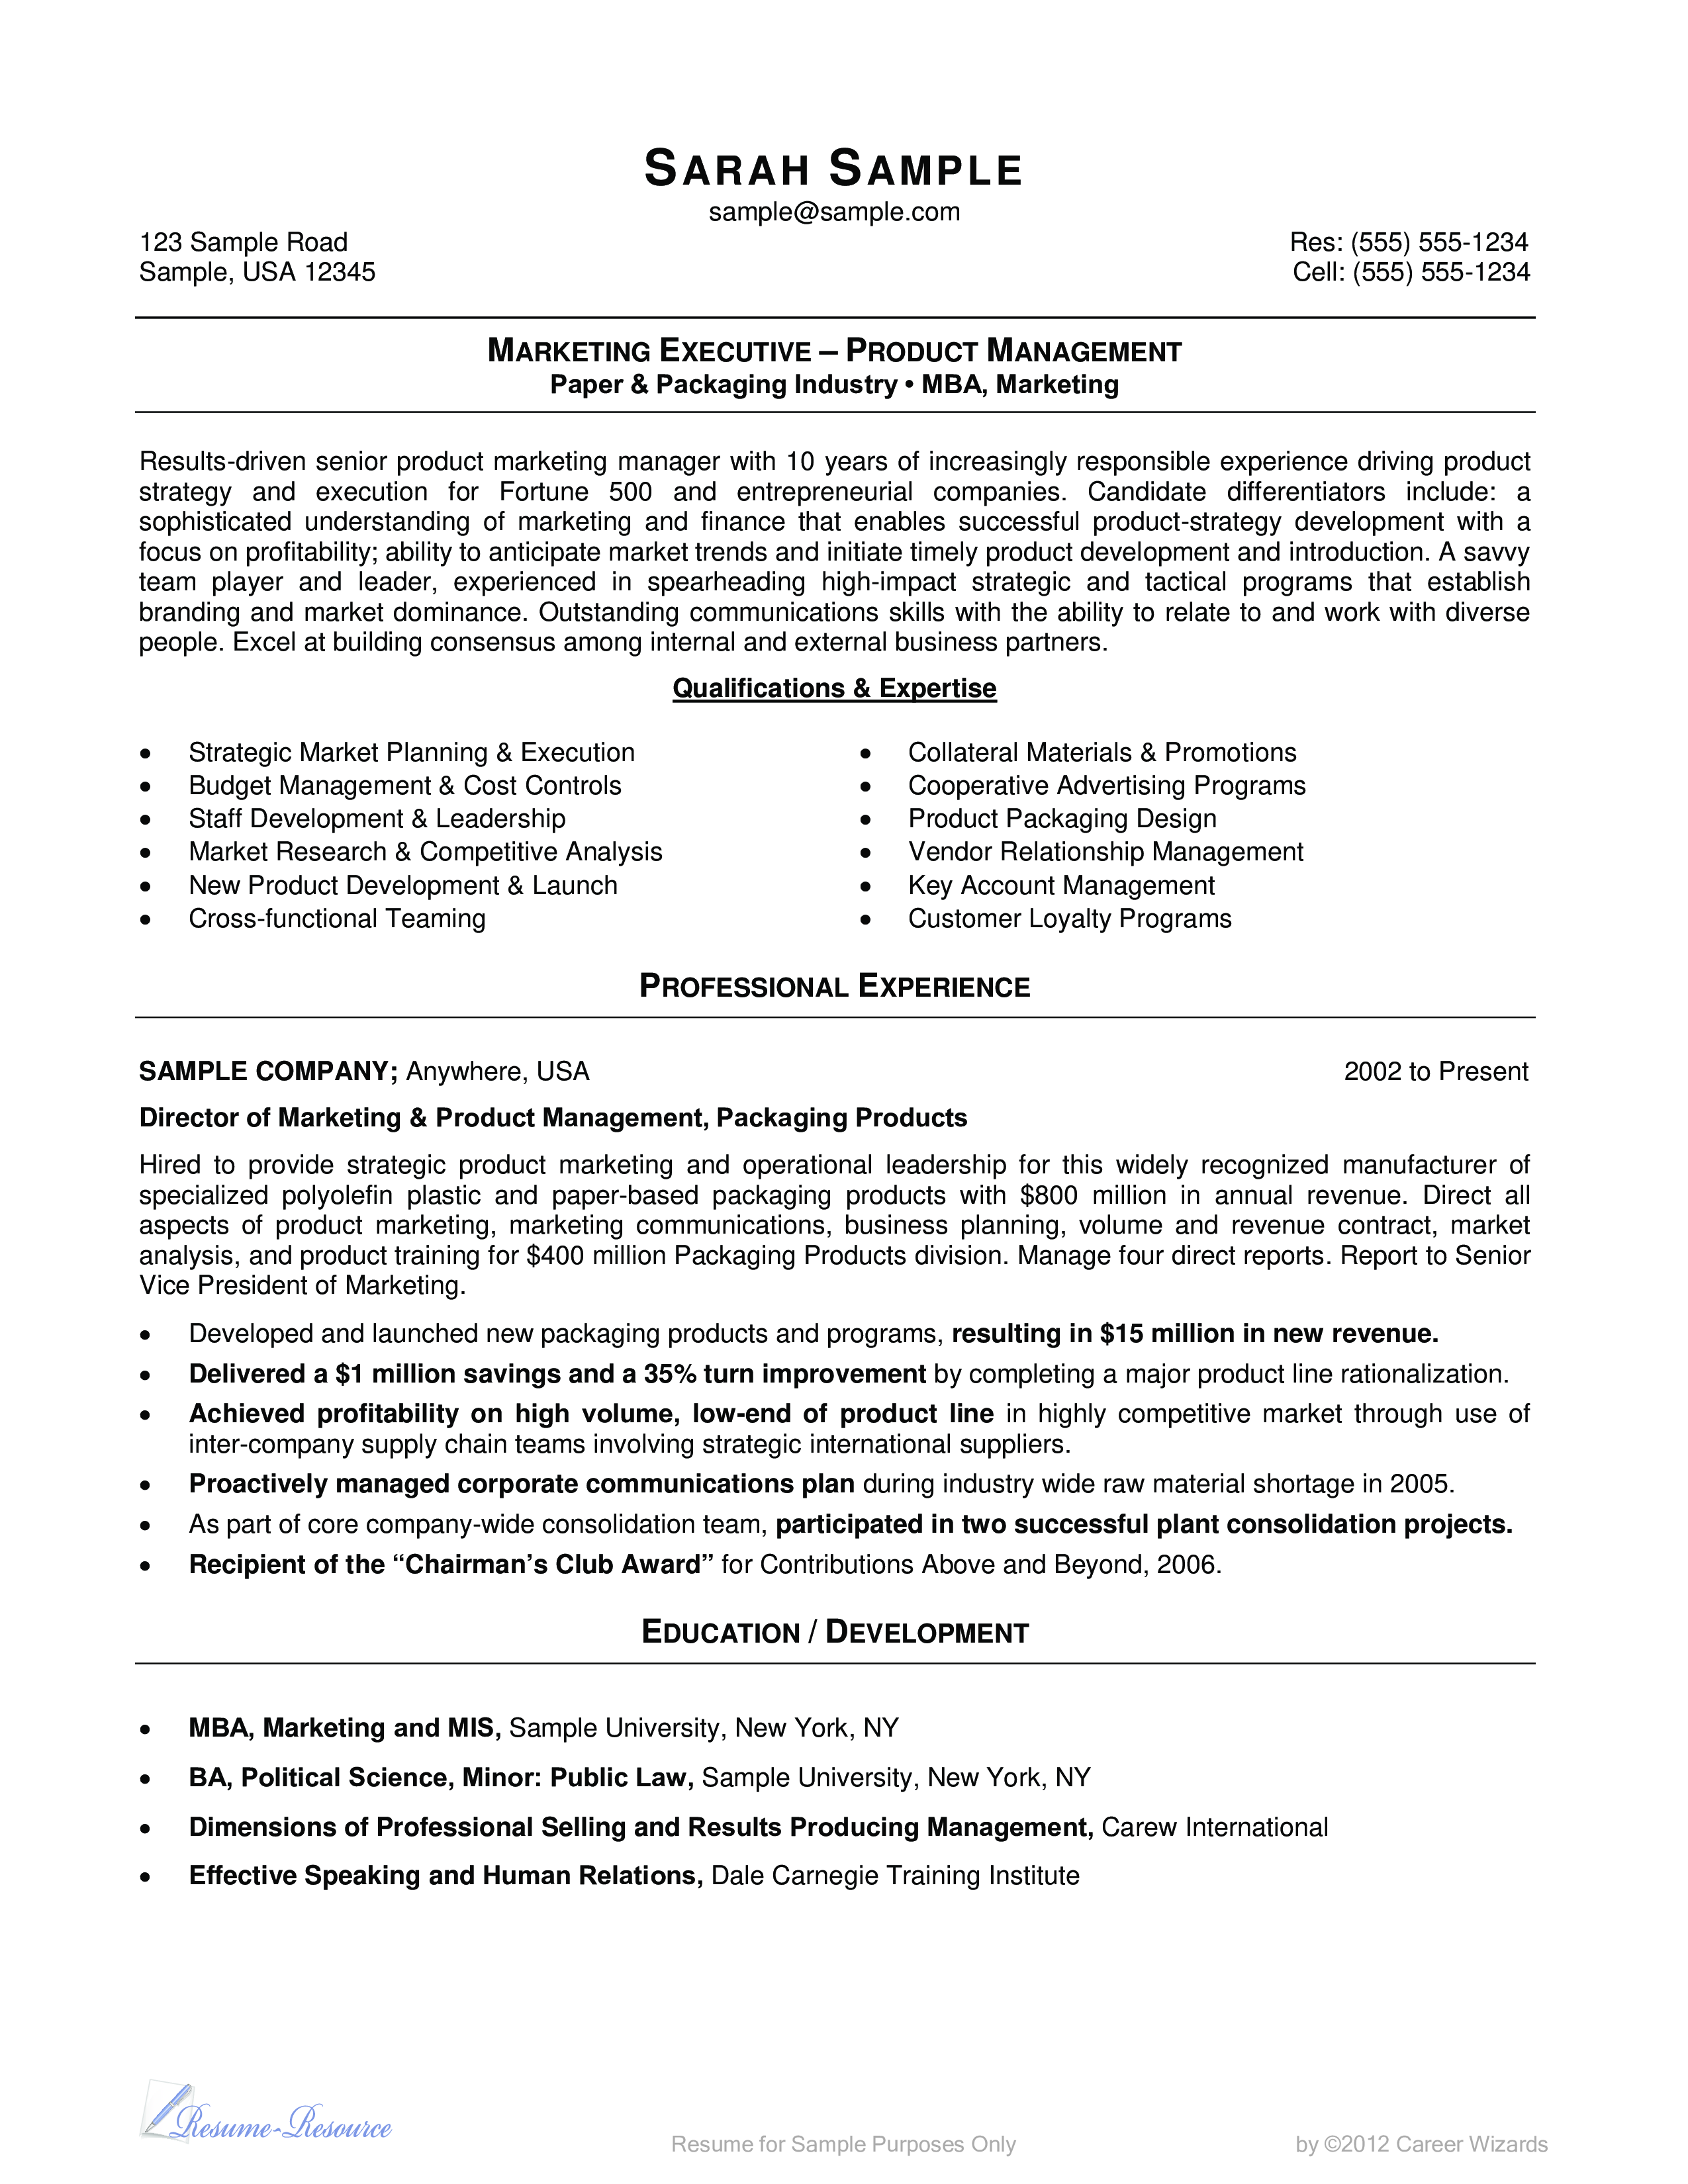 Marketing Manager Resume Format main image